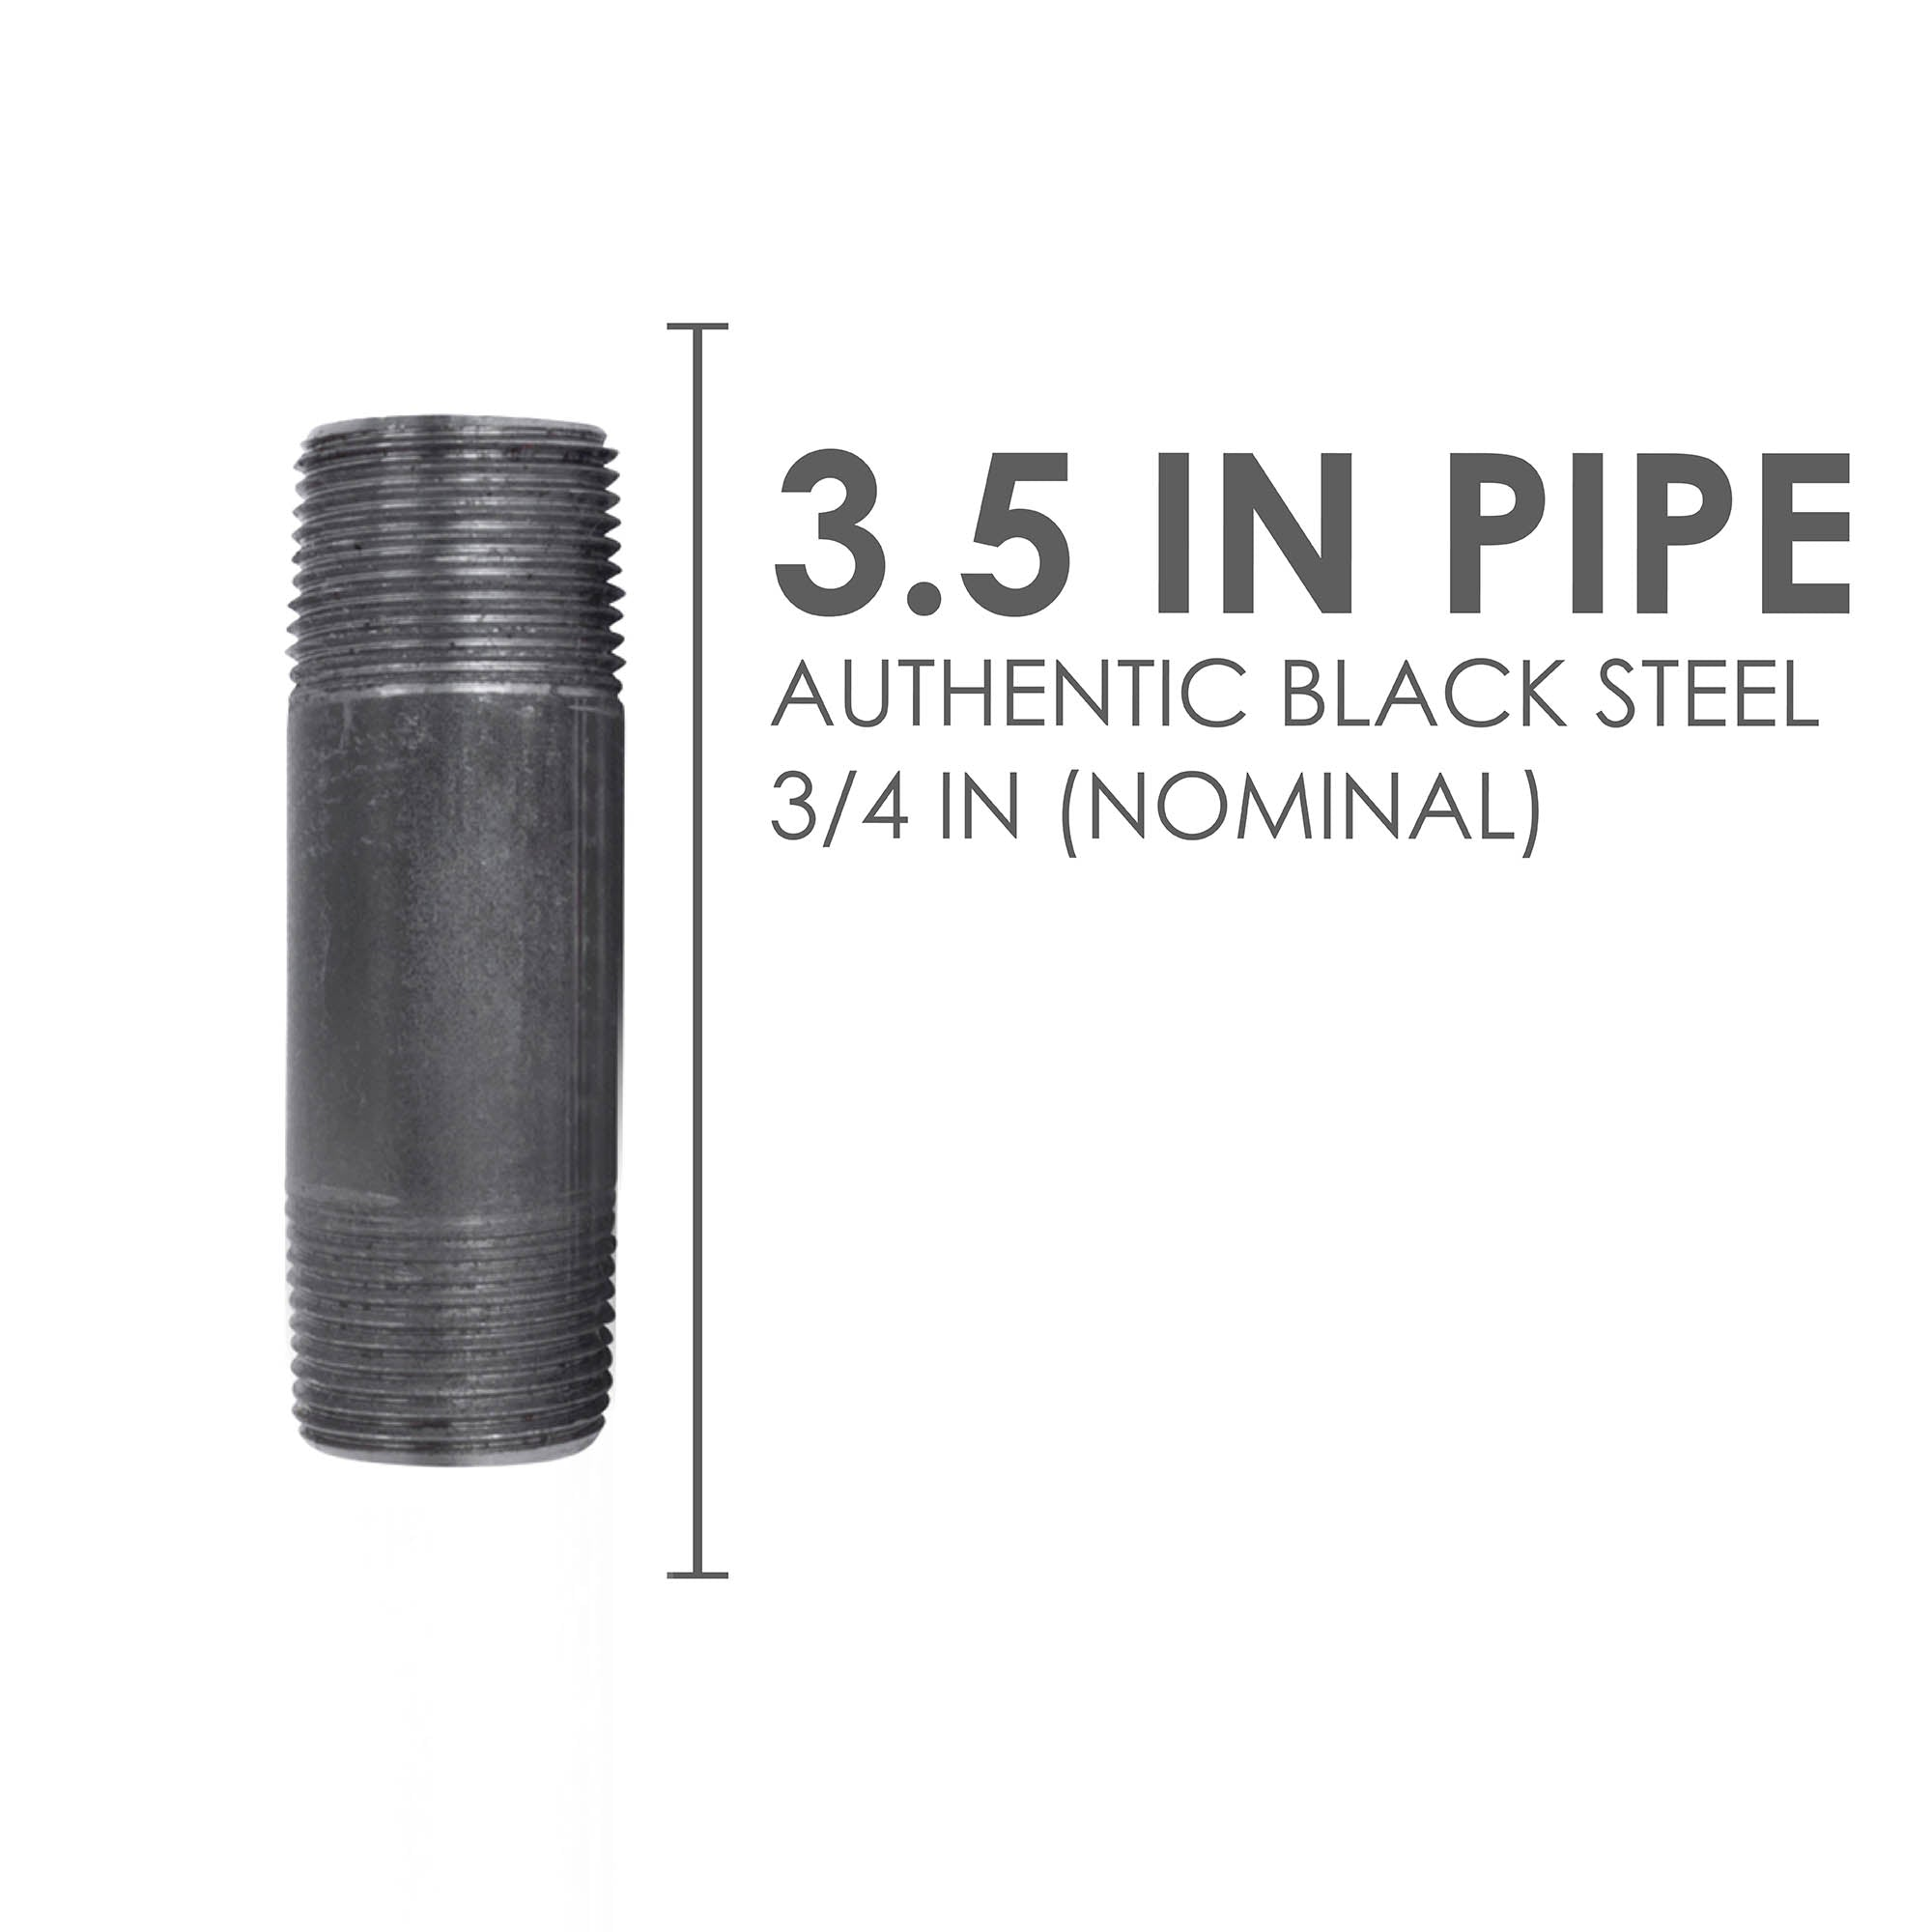 3/4 In X 3 1/2 In Black Pipe - Pipe Decor